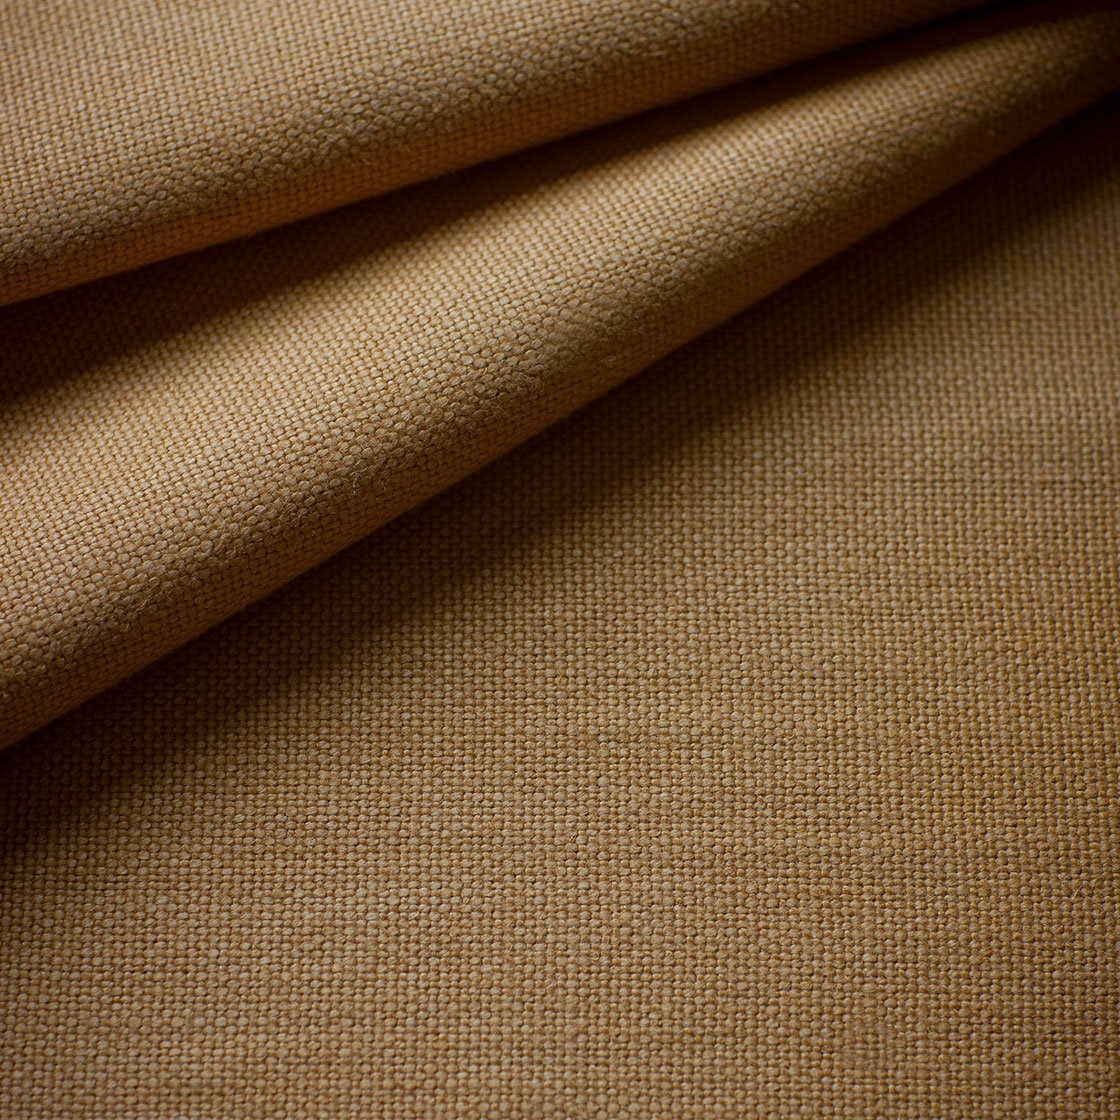 Donegal Linen - Sand - Beaumont & Fletcher - Beaumont & Fletcher